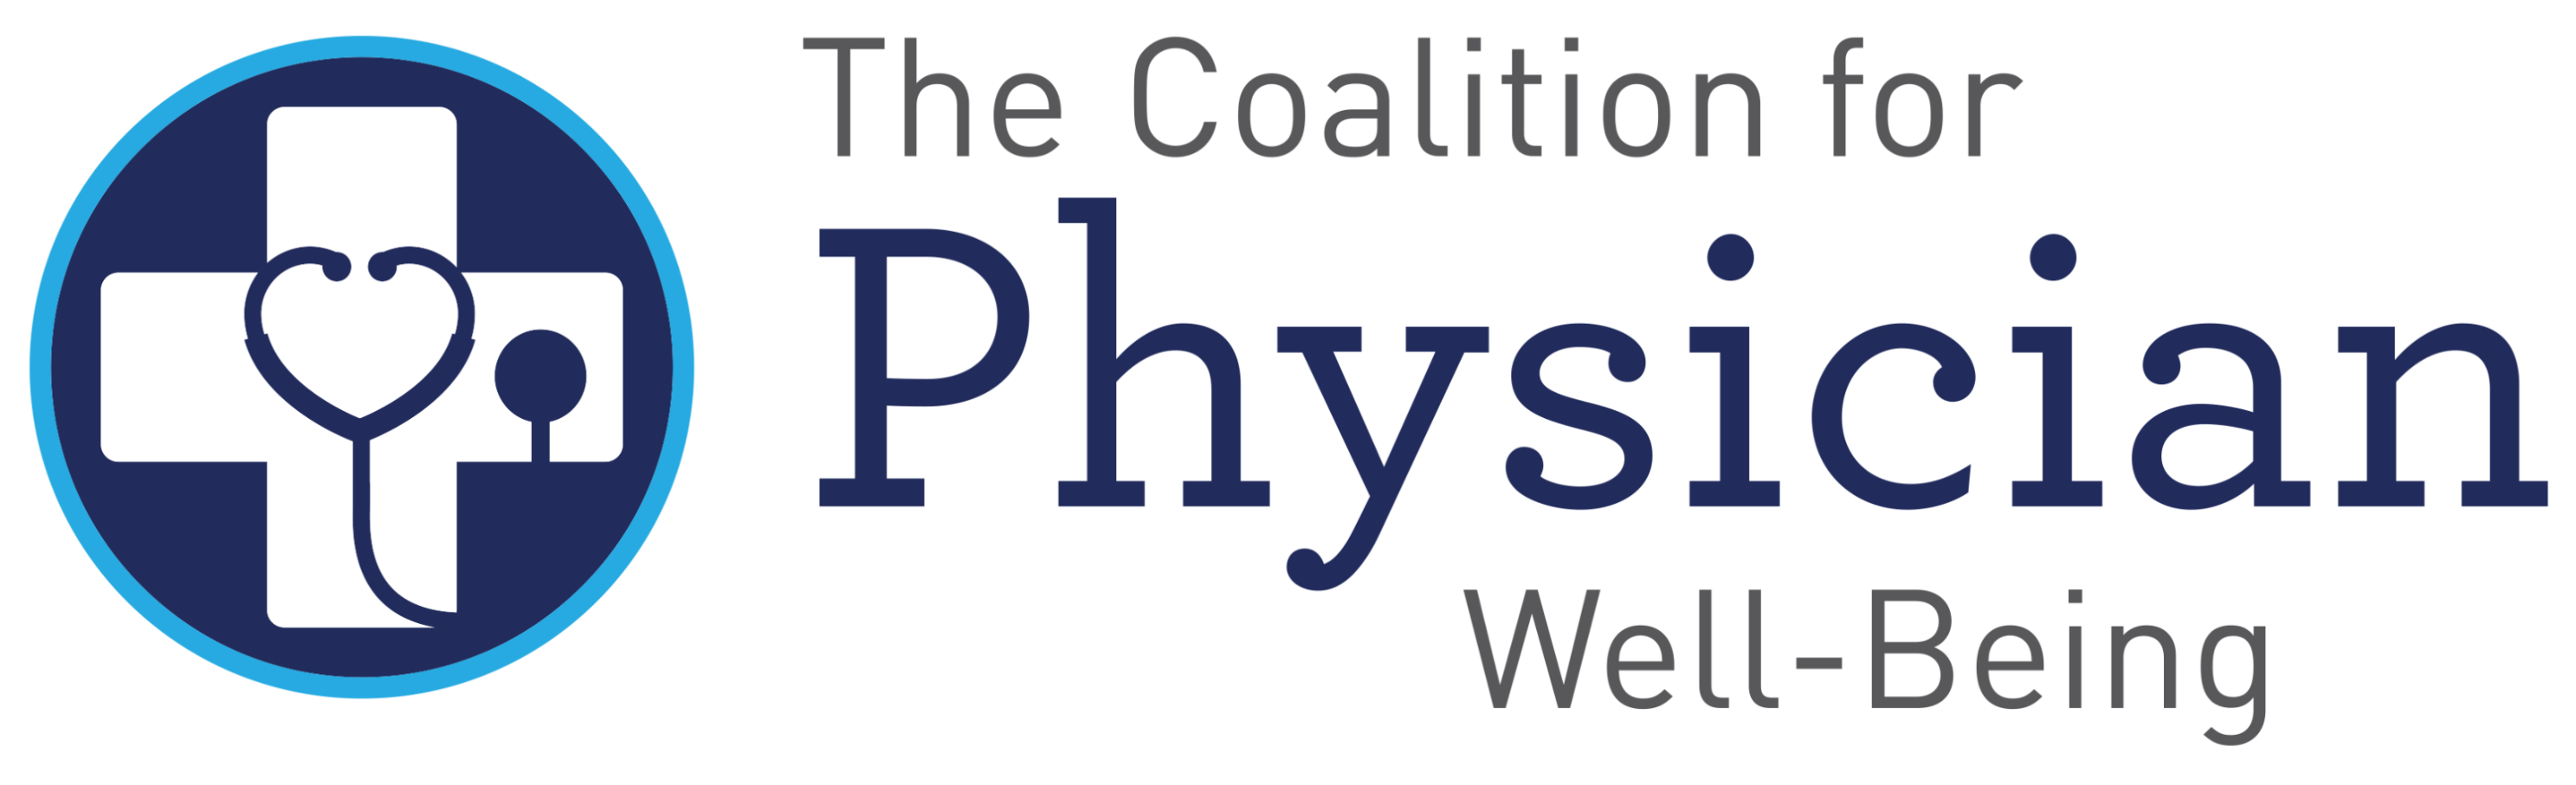 CoalitionLogo_PNG_HiRes_edited.png